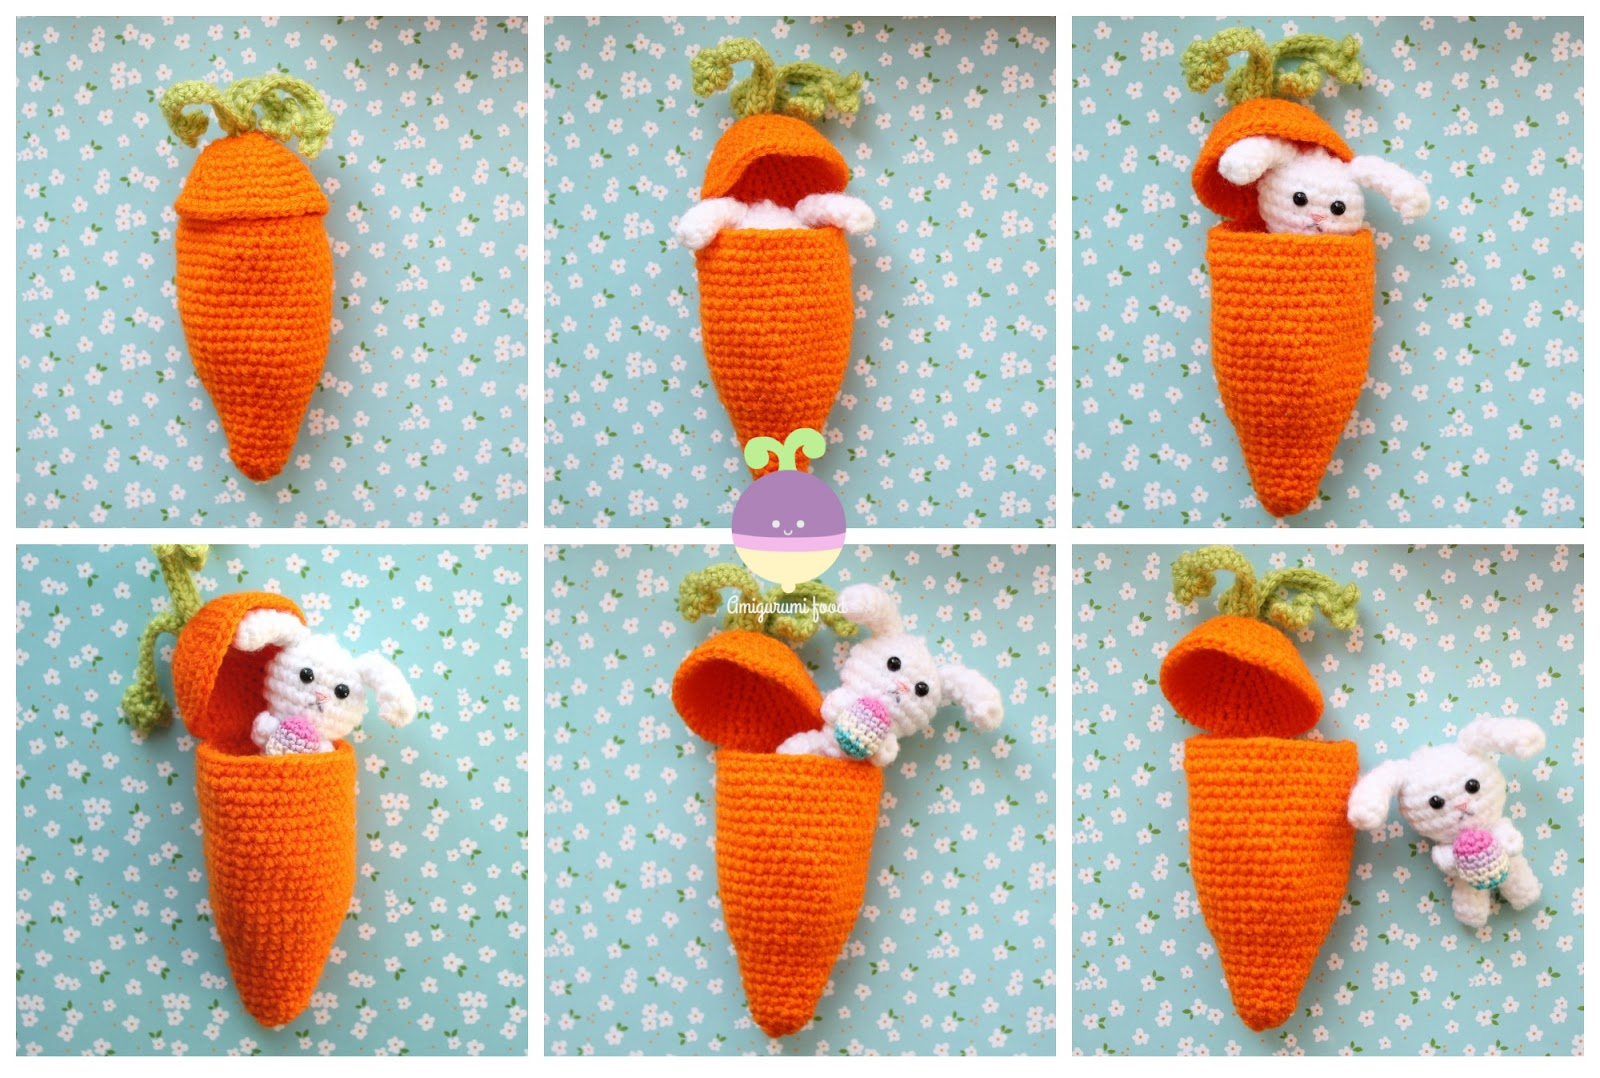 Amigurumi Food: Carrot Surprise Easter Bunny Free Crochet Pattern